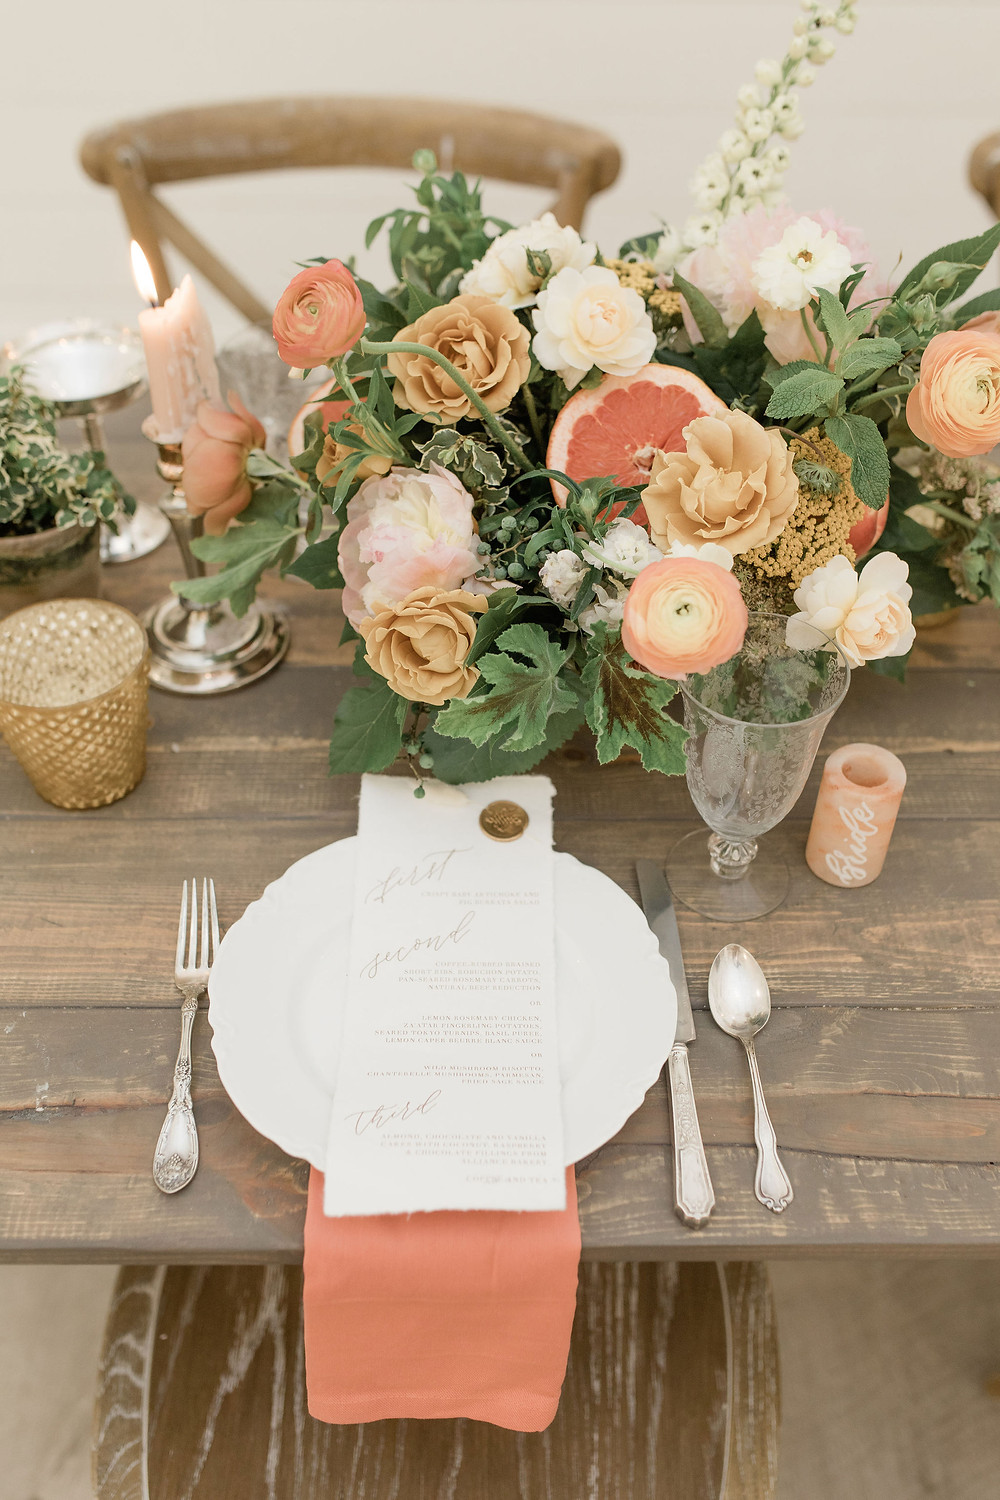 Farm table centerpiece showing details of fresh fruit among ranunculus, roses, and peonies, mint springs, and stock.